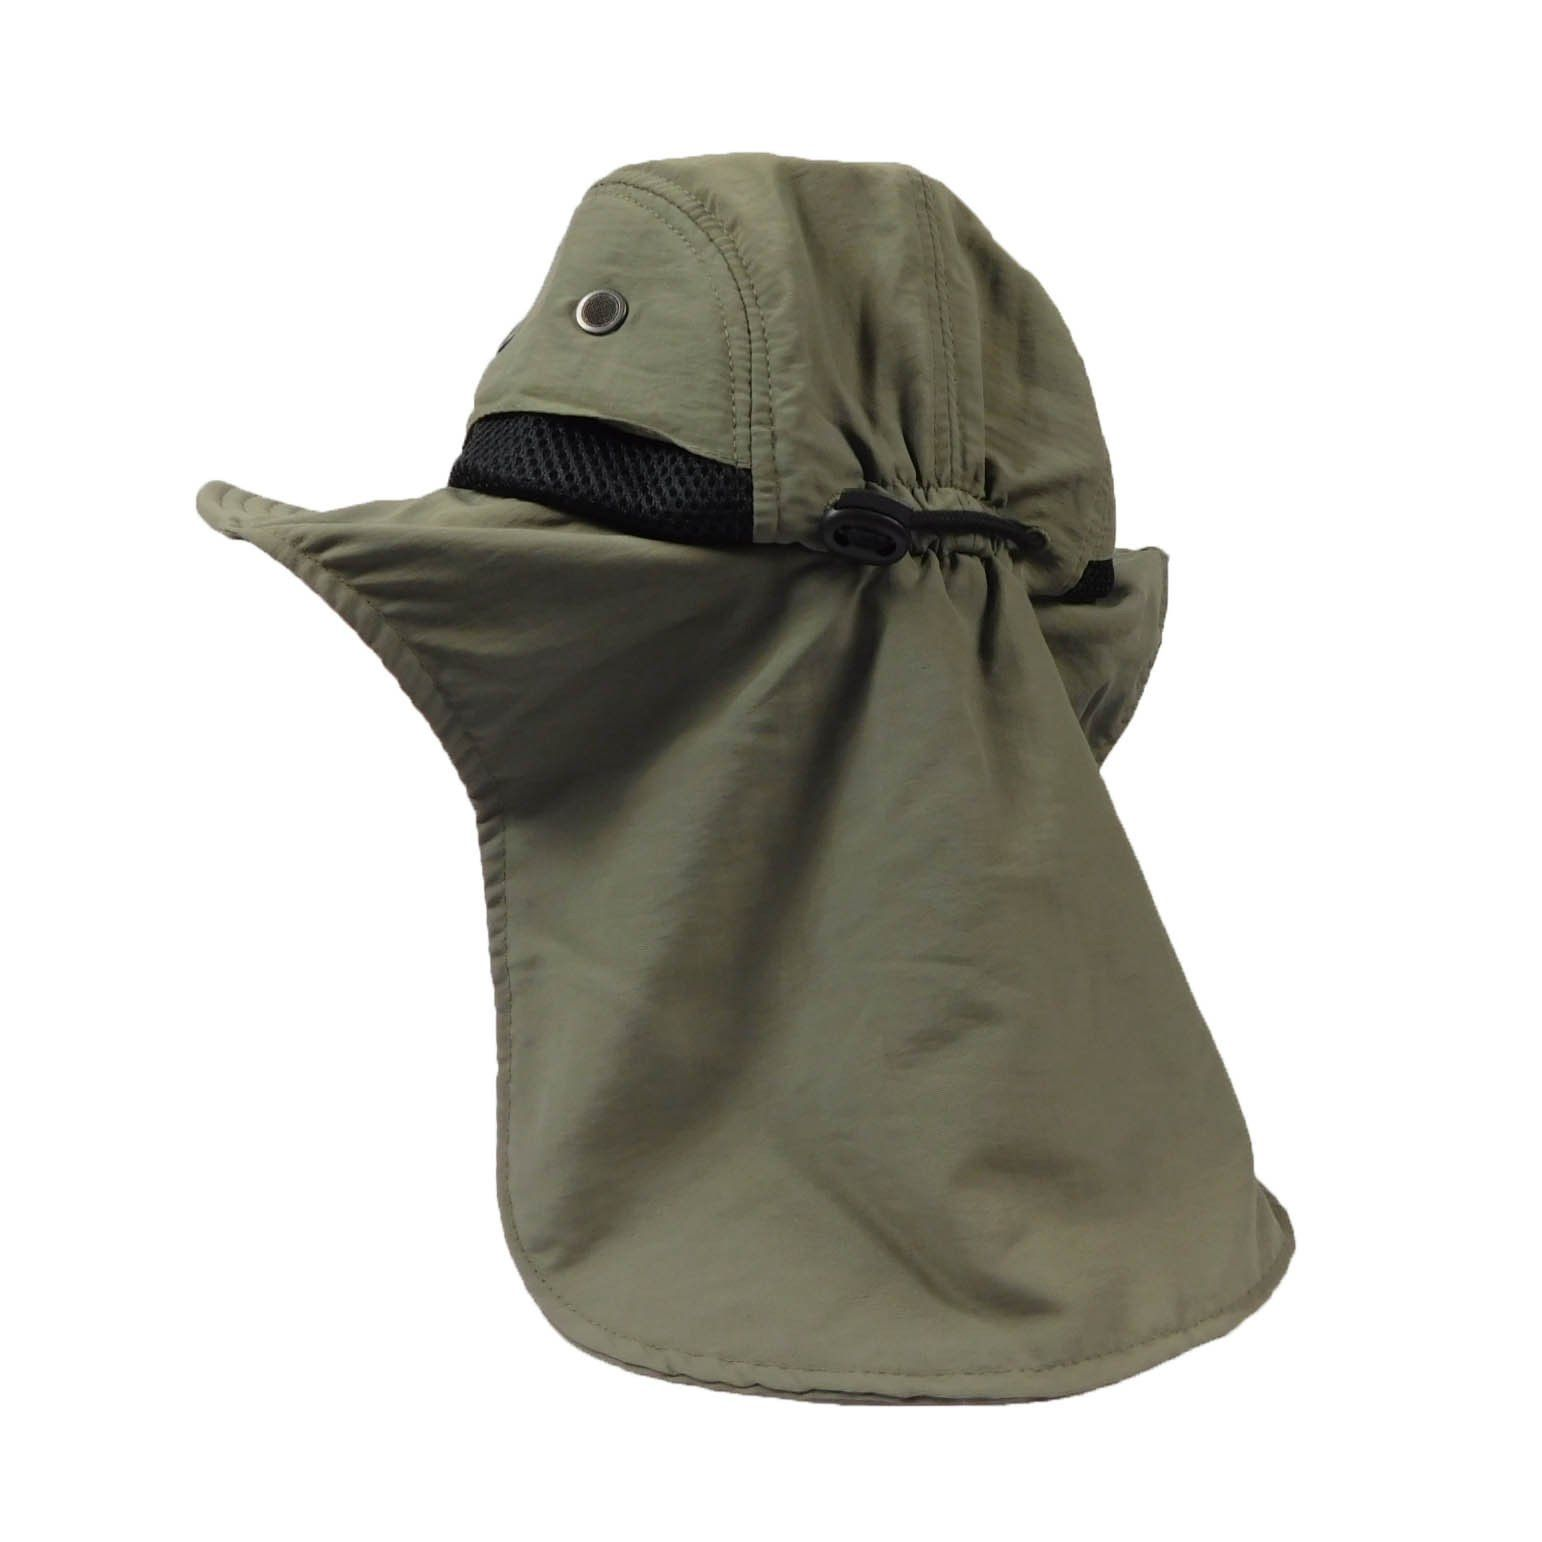 Four panel crown with soft bill. Mesh side panel. Moisture wicking  sweatband. Drawstring with lock. Flap covers neck. One size fits most. 100%  polyester. 60e8d1ace26